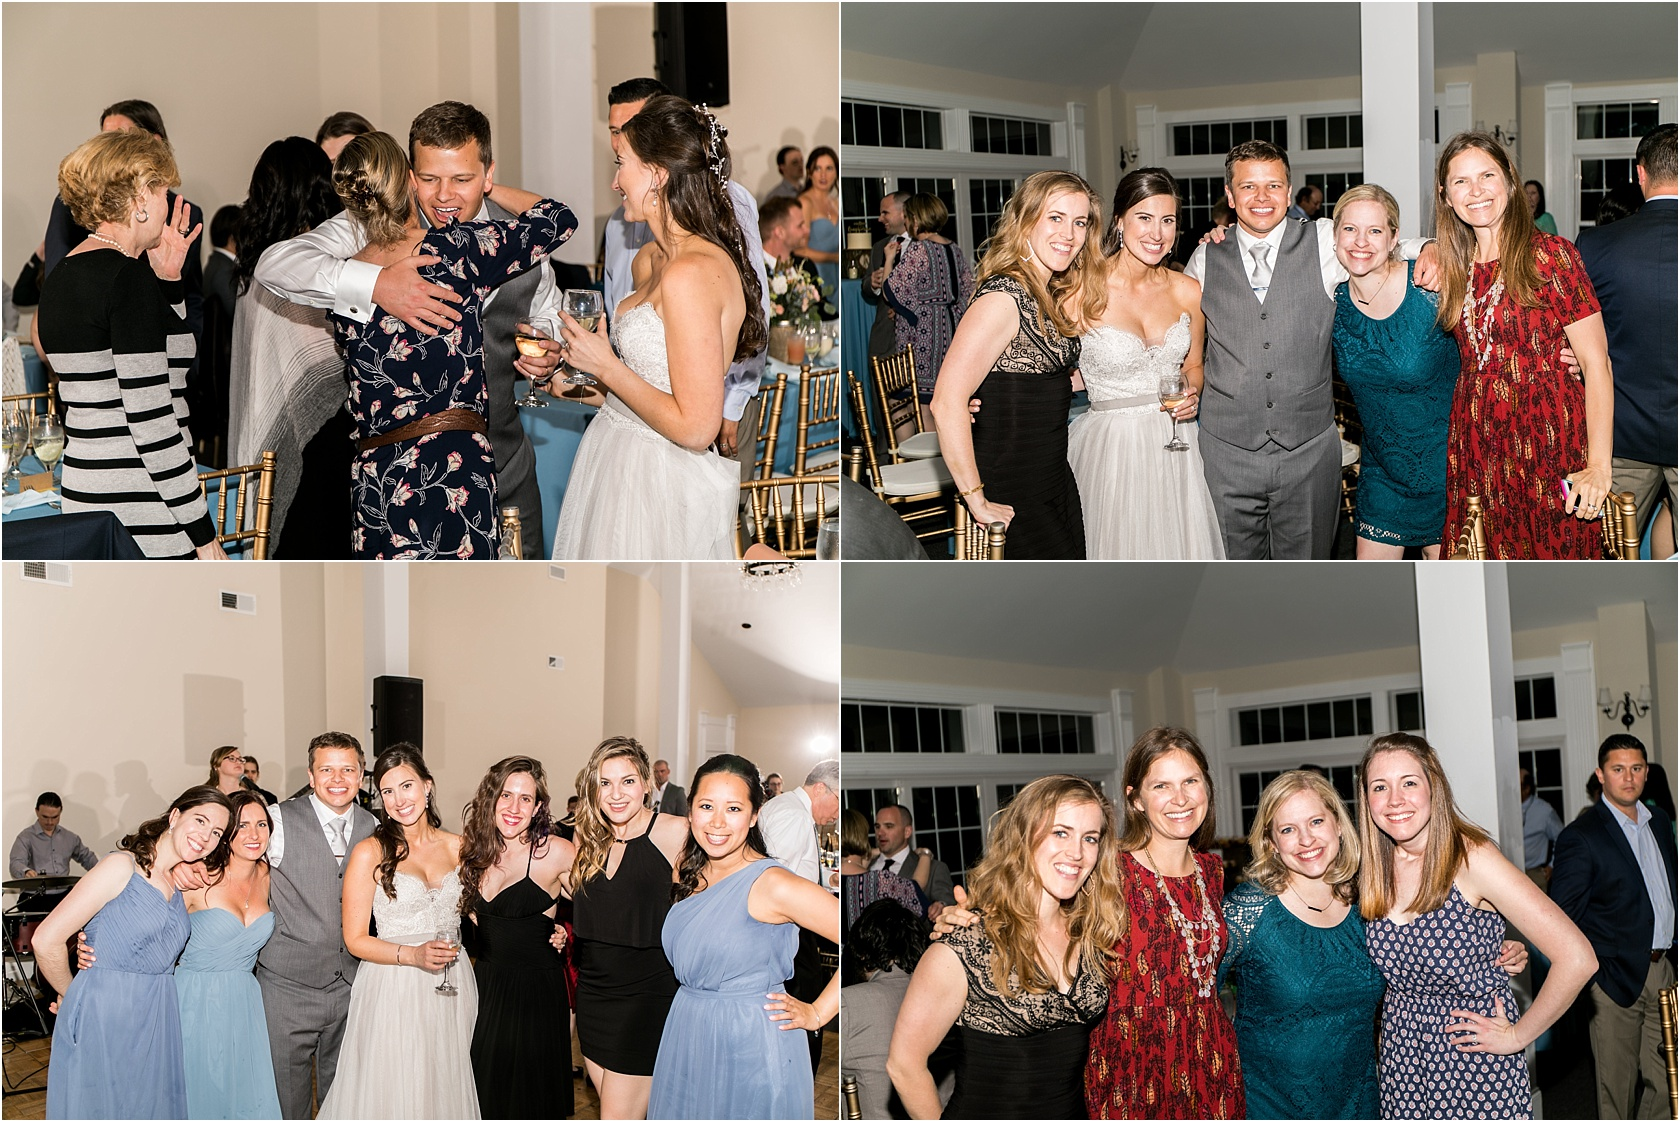 Ousborne Springfield Manor Wedding Living Radiant Photography photos_0168.jpg